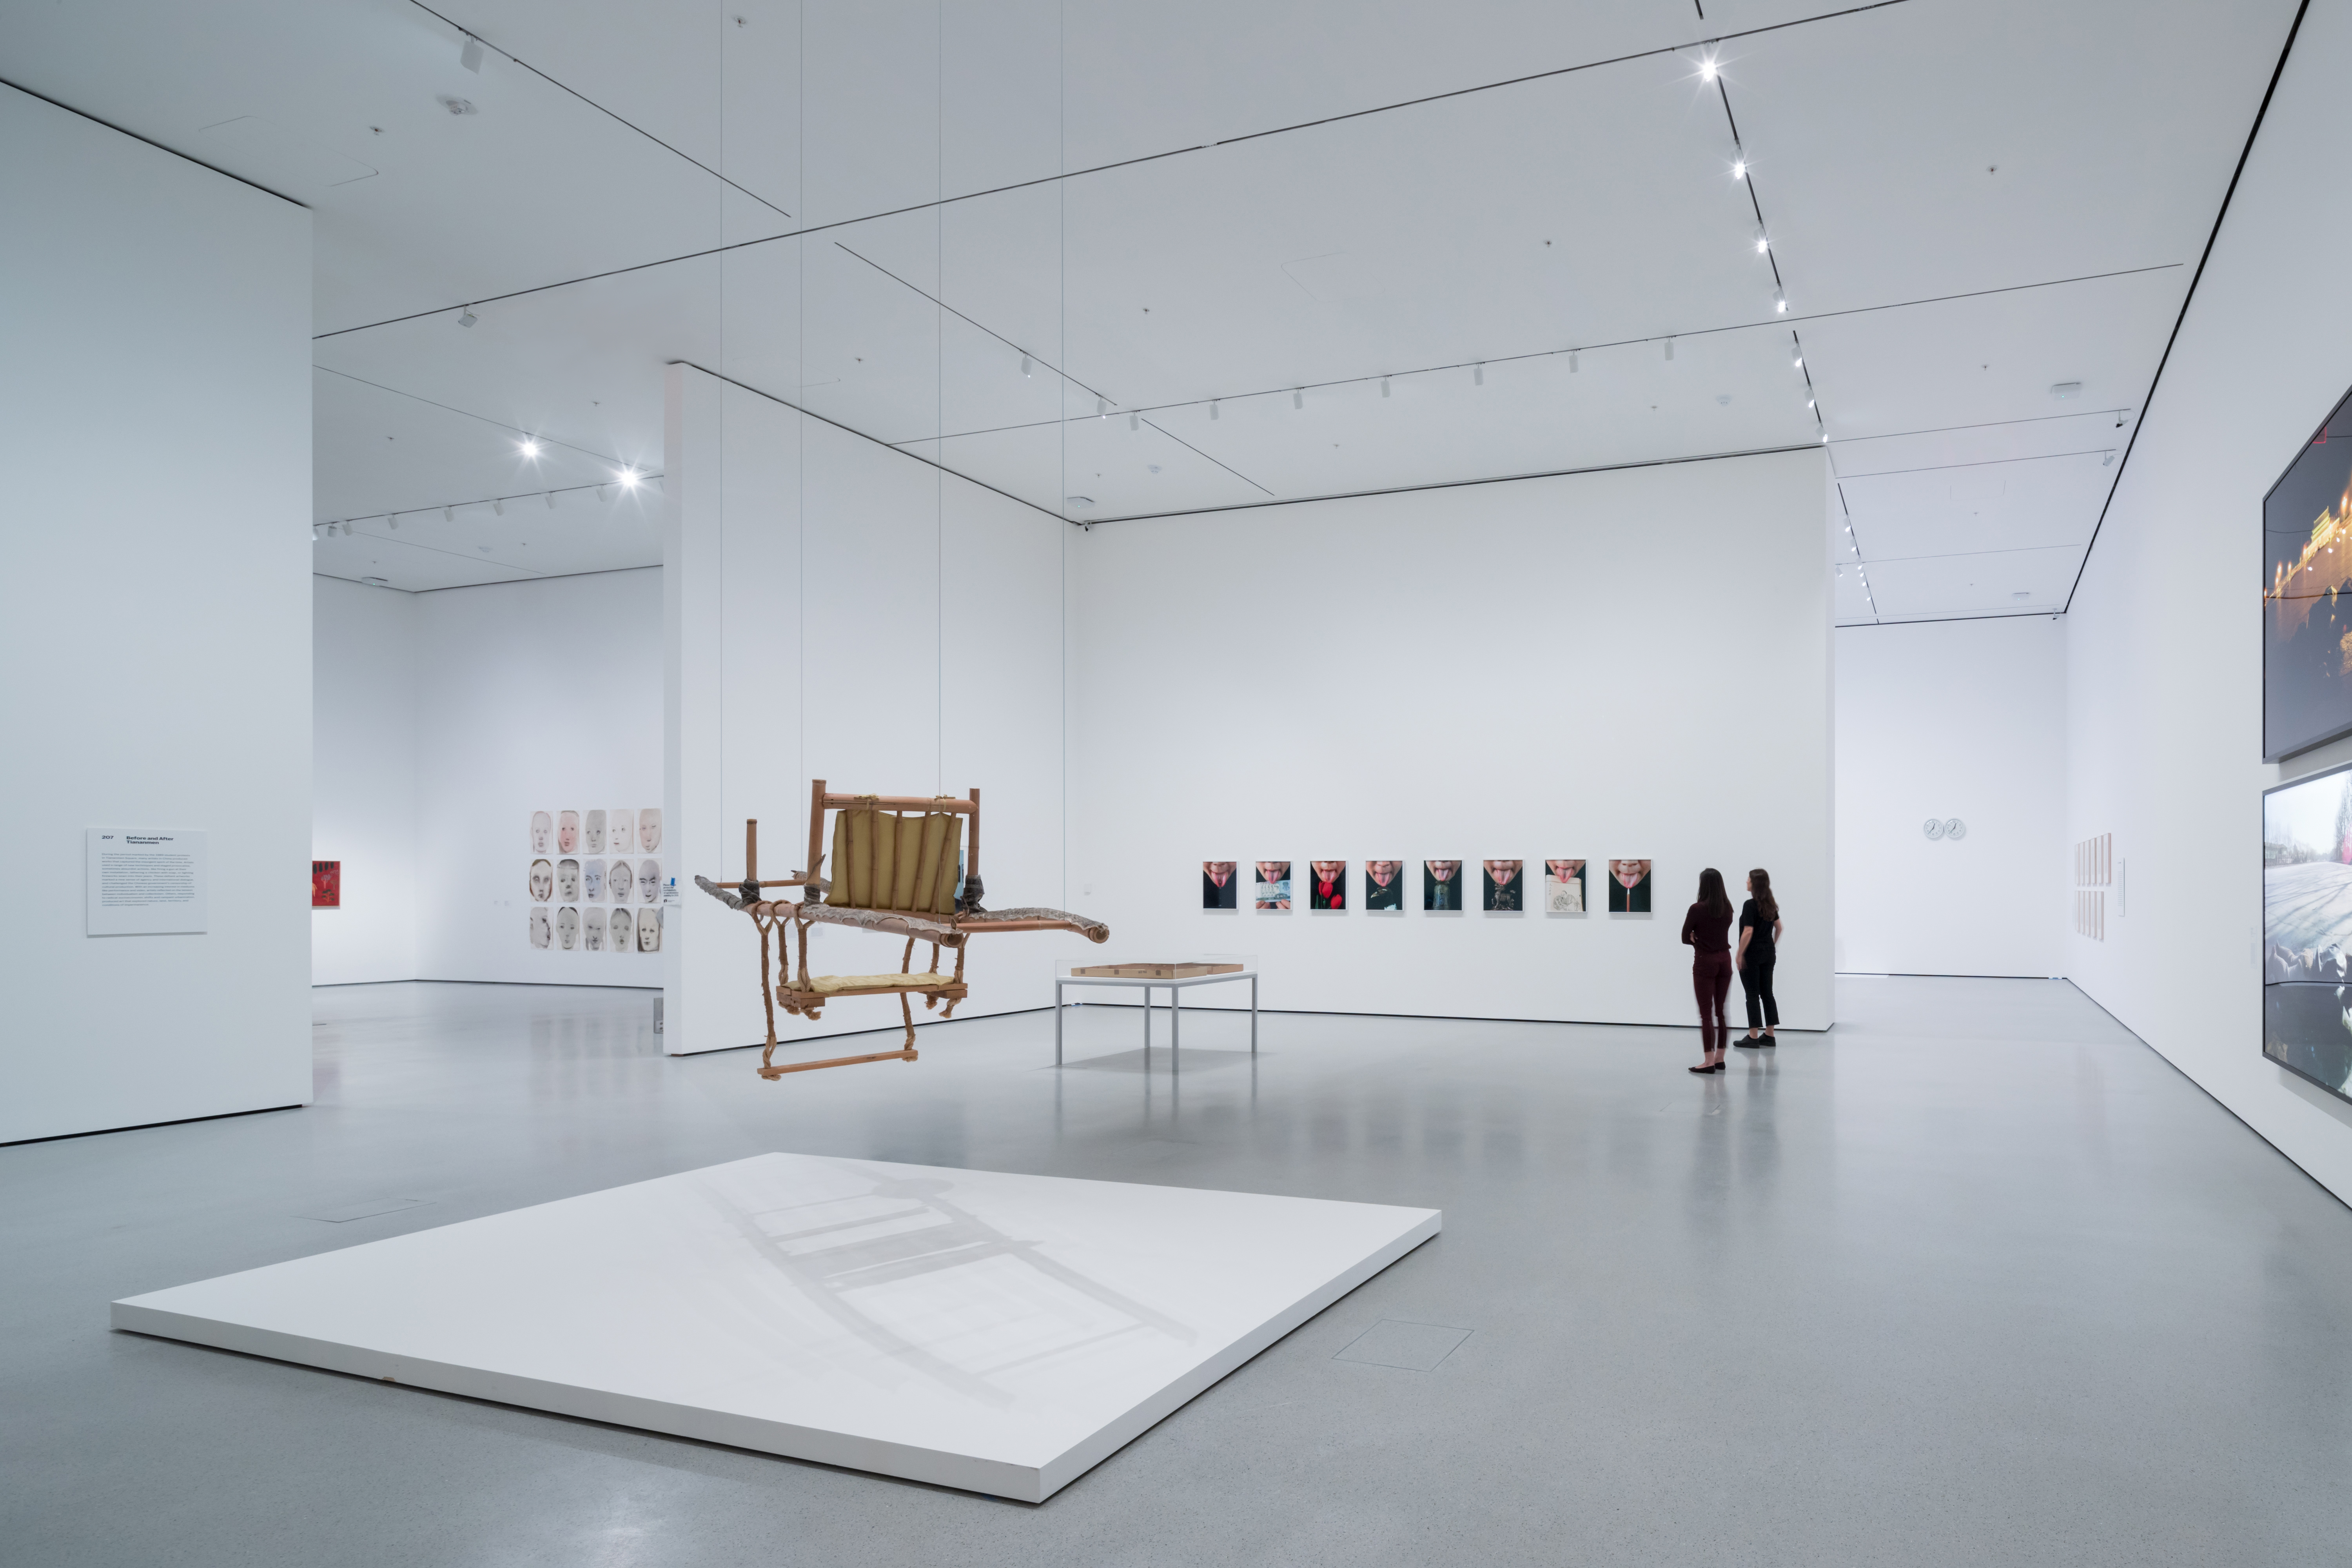 <p>MoMa Fase 2. Installation View of David Geffen Wing gallery 207, Before and After Tiananmen, The Museum of Modern Art Beeld Iwan Baan. Courtesey of MoMa</p>